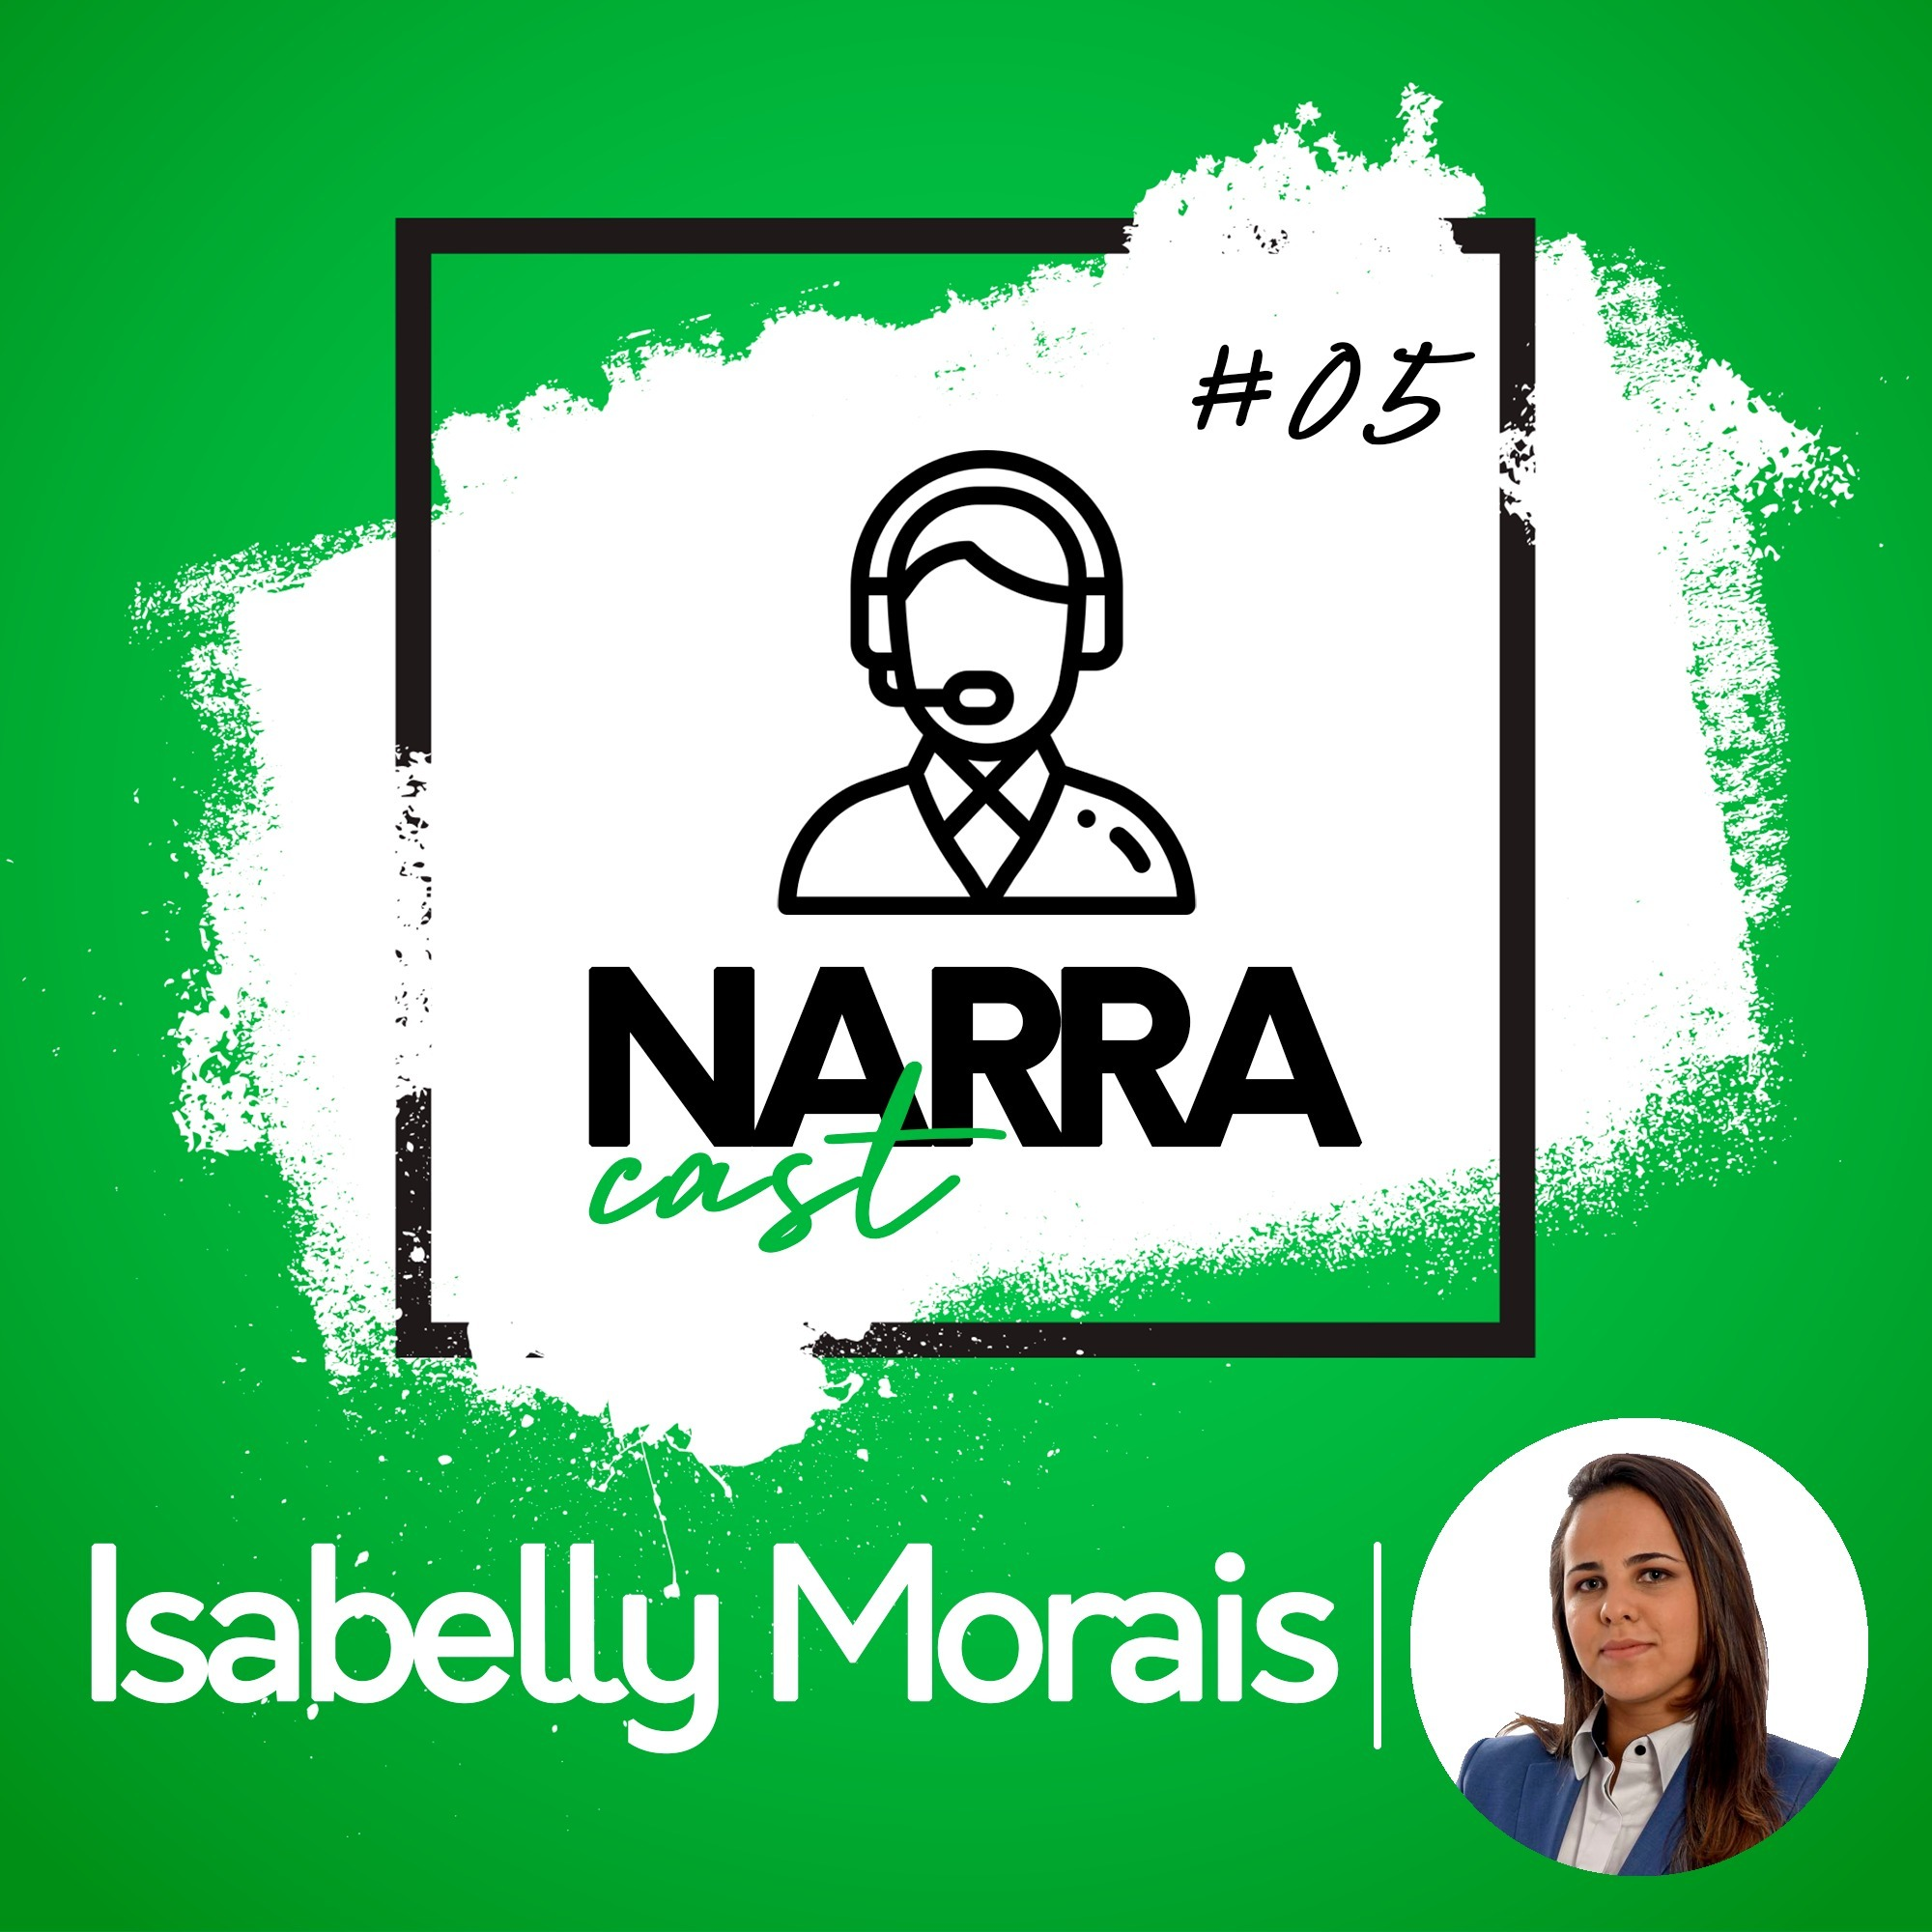 NarraCast #05 Isabelly Morais